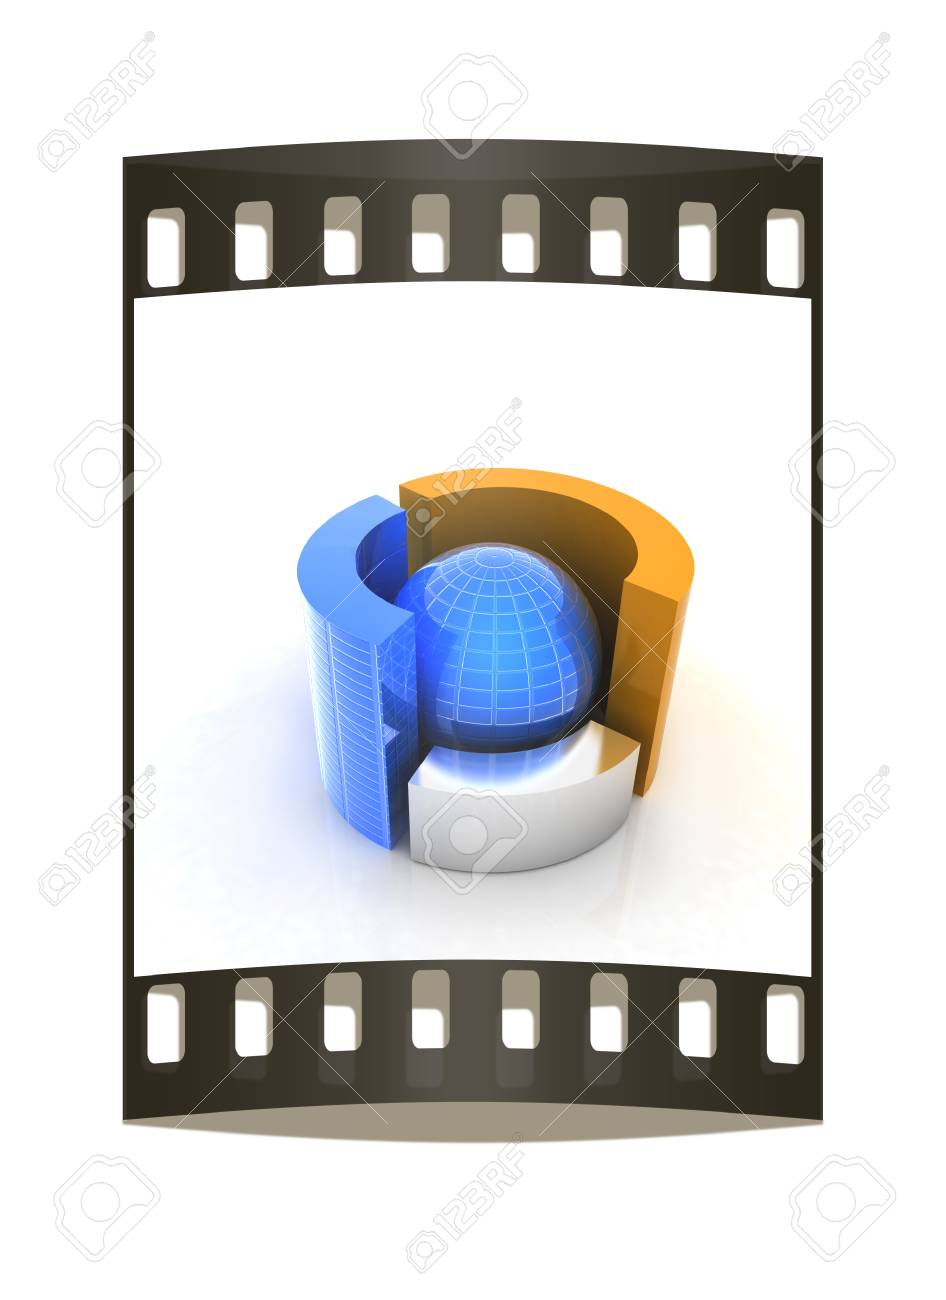 medium resolution of 3d circular diagram and sphere on white background the film strip stock photo 39418823